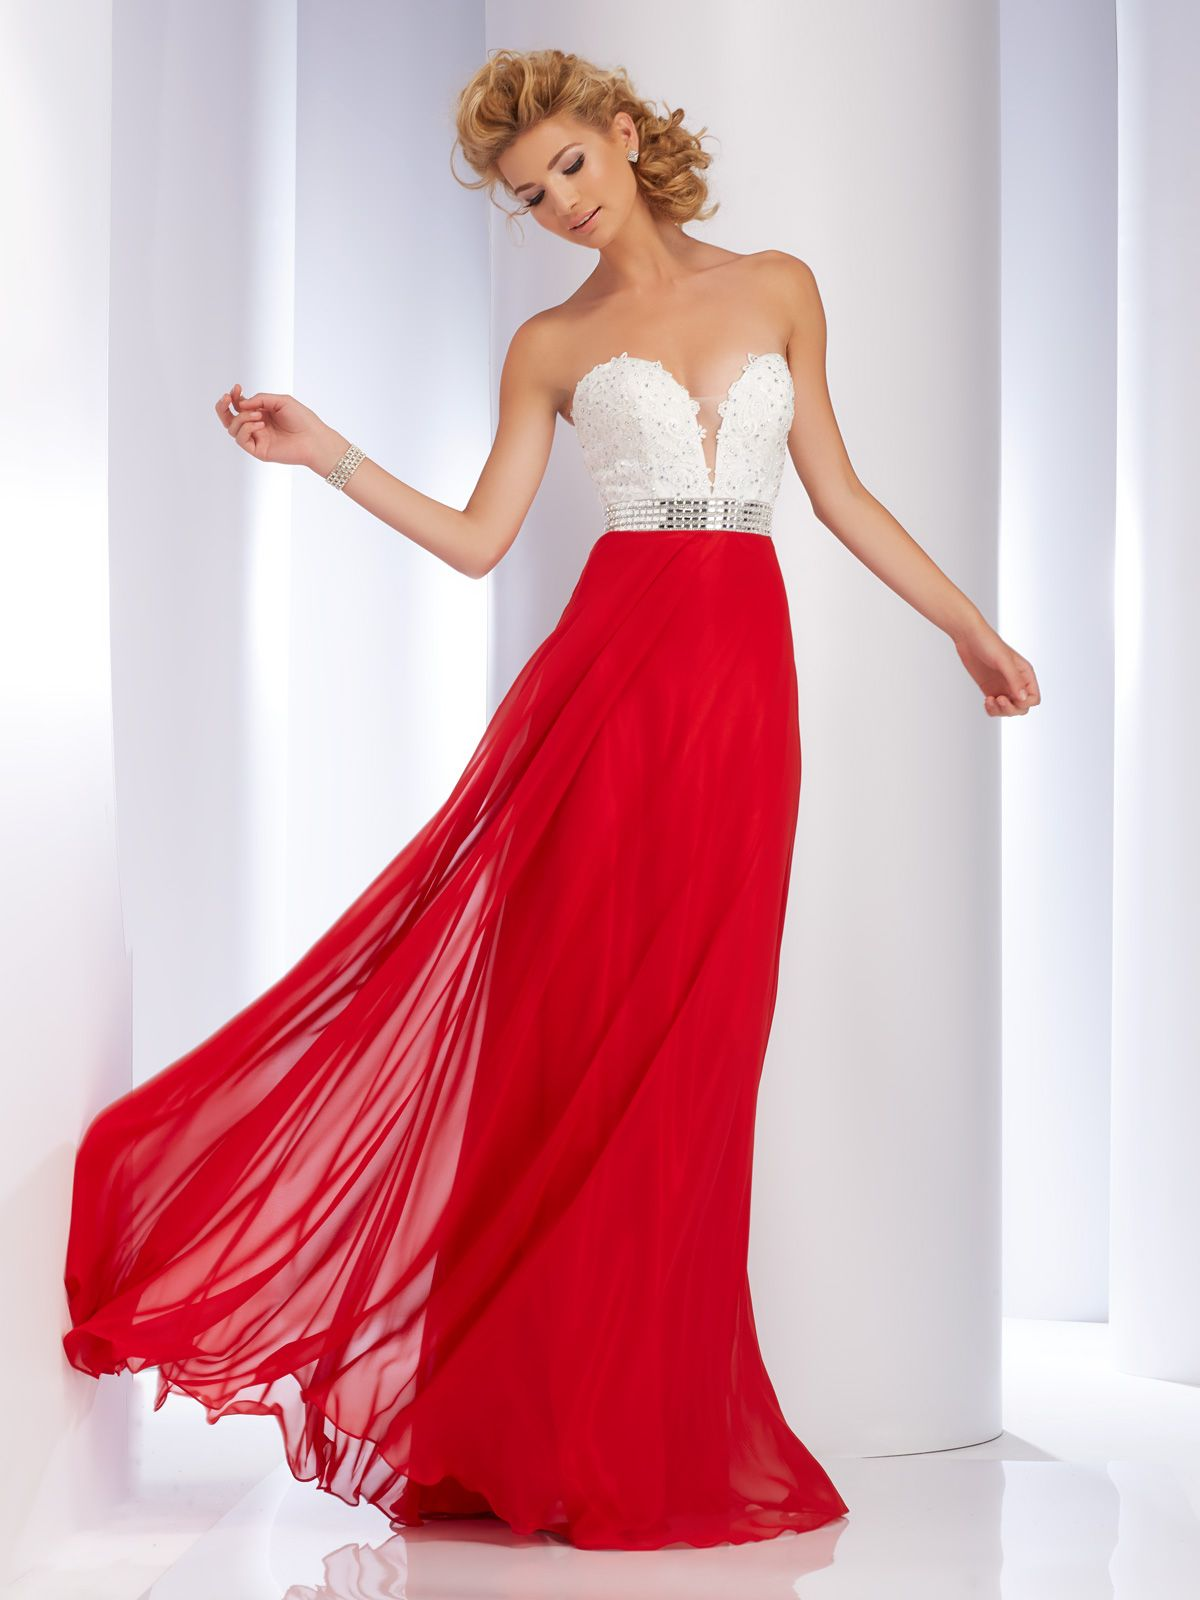 Strapless embellished prom gown from clarisse sizes in white